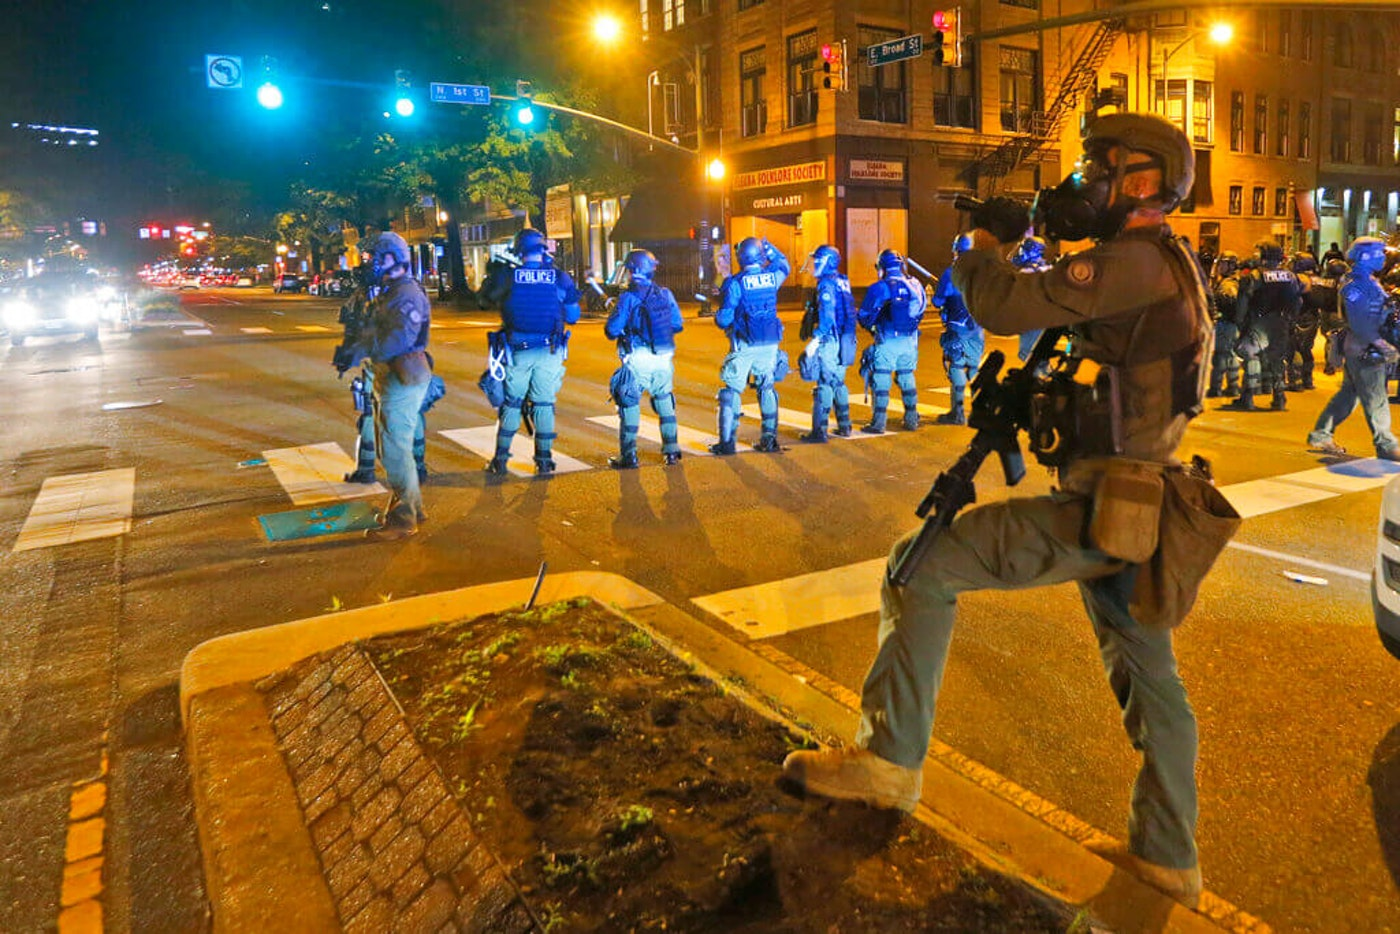 Police secure an intersection in Richmond, Va. Protests continue across the country over the death of George Floyd, a black man who died after being restrained by Minneapolis police officers on May 25. (AP Photo/Steve Helber)